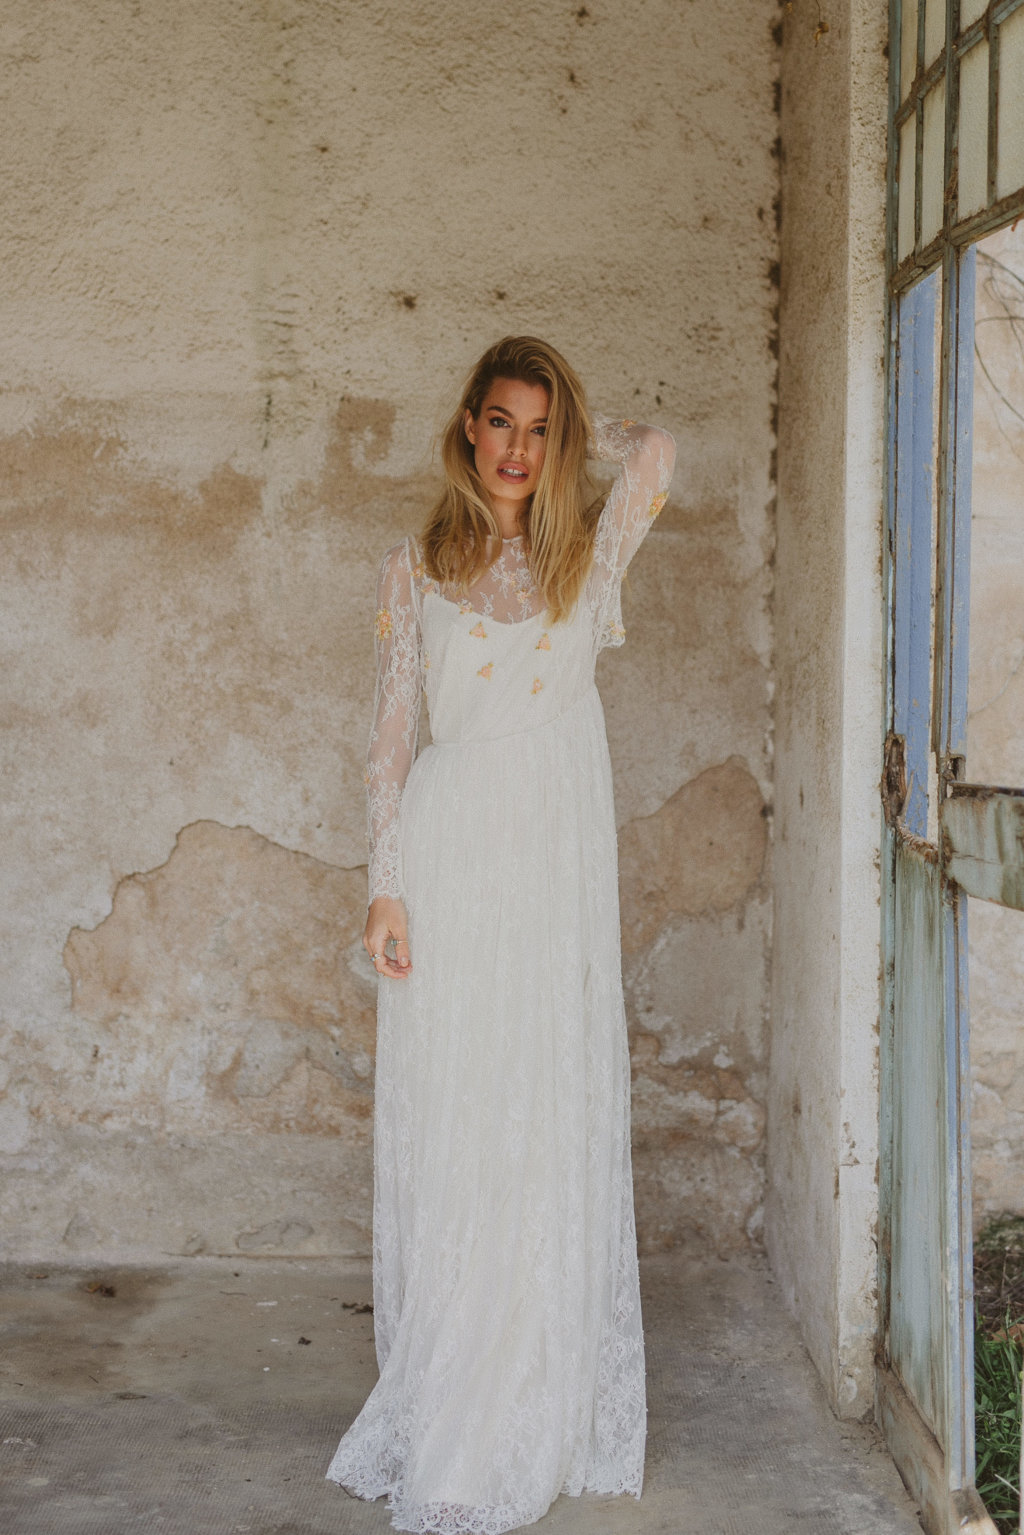 immacle tanger novias 2017 IMMACLE TANGER-046